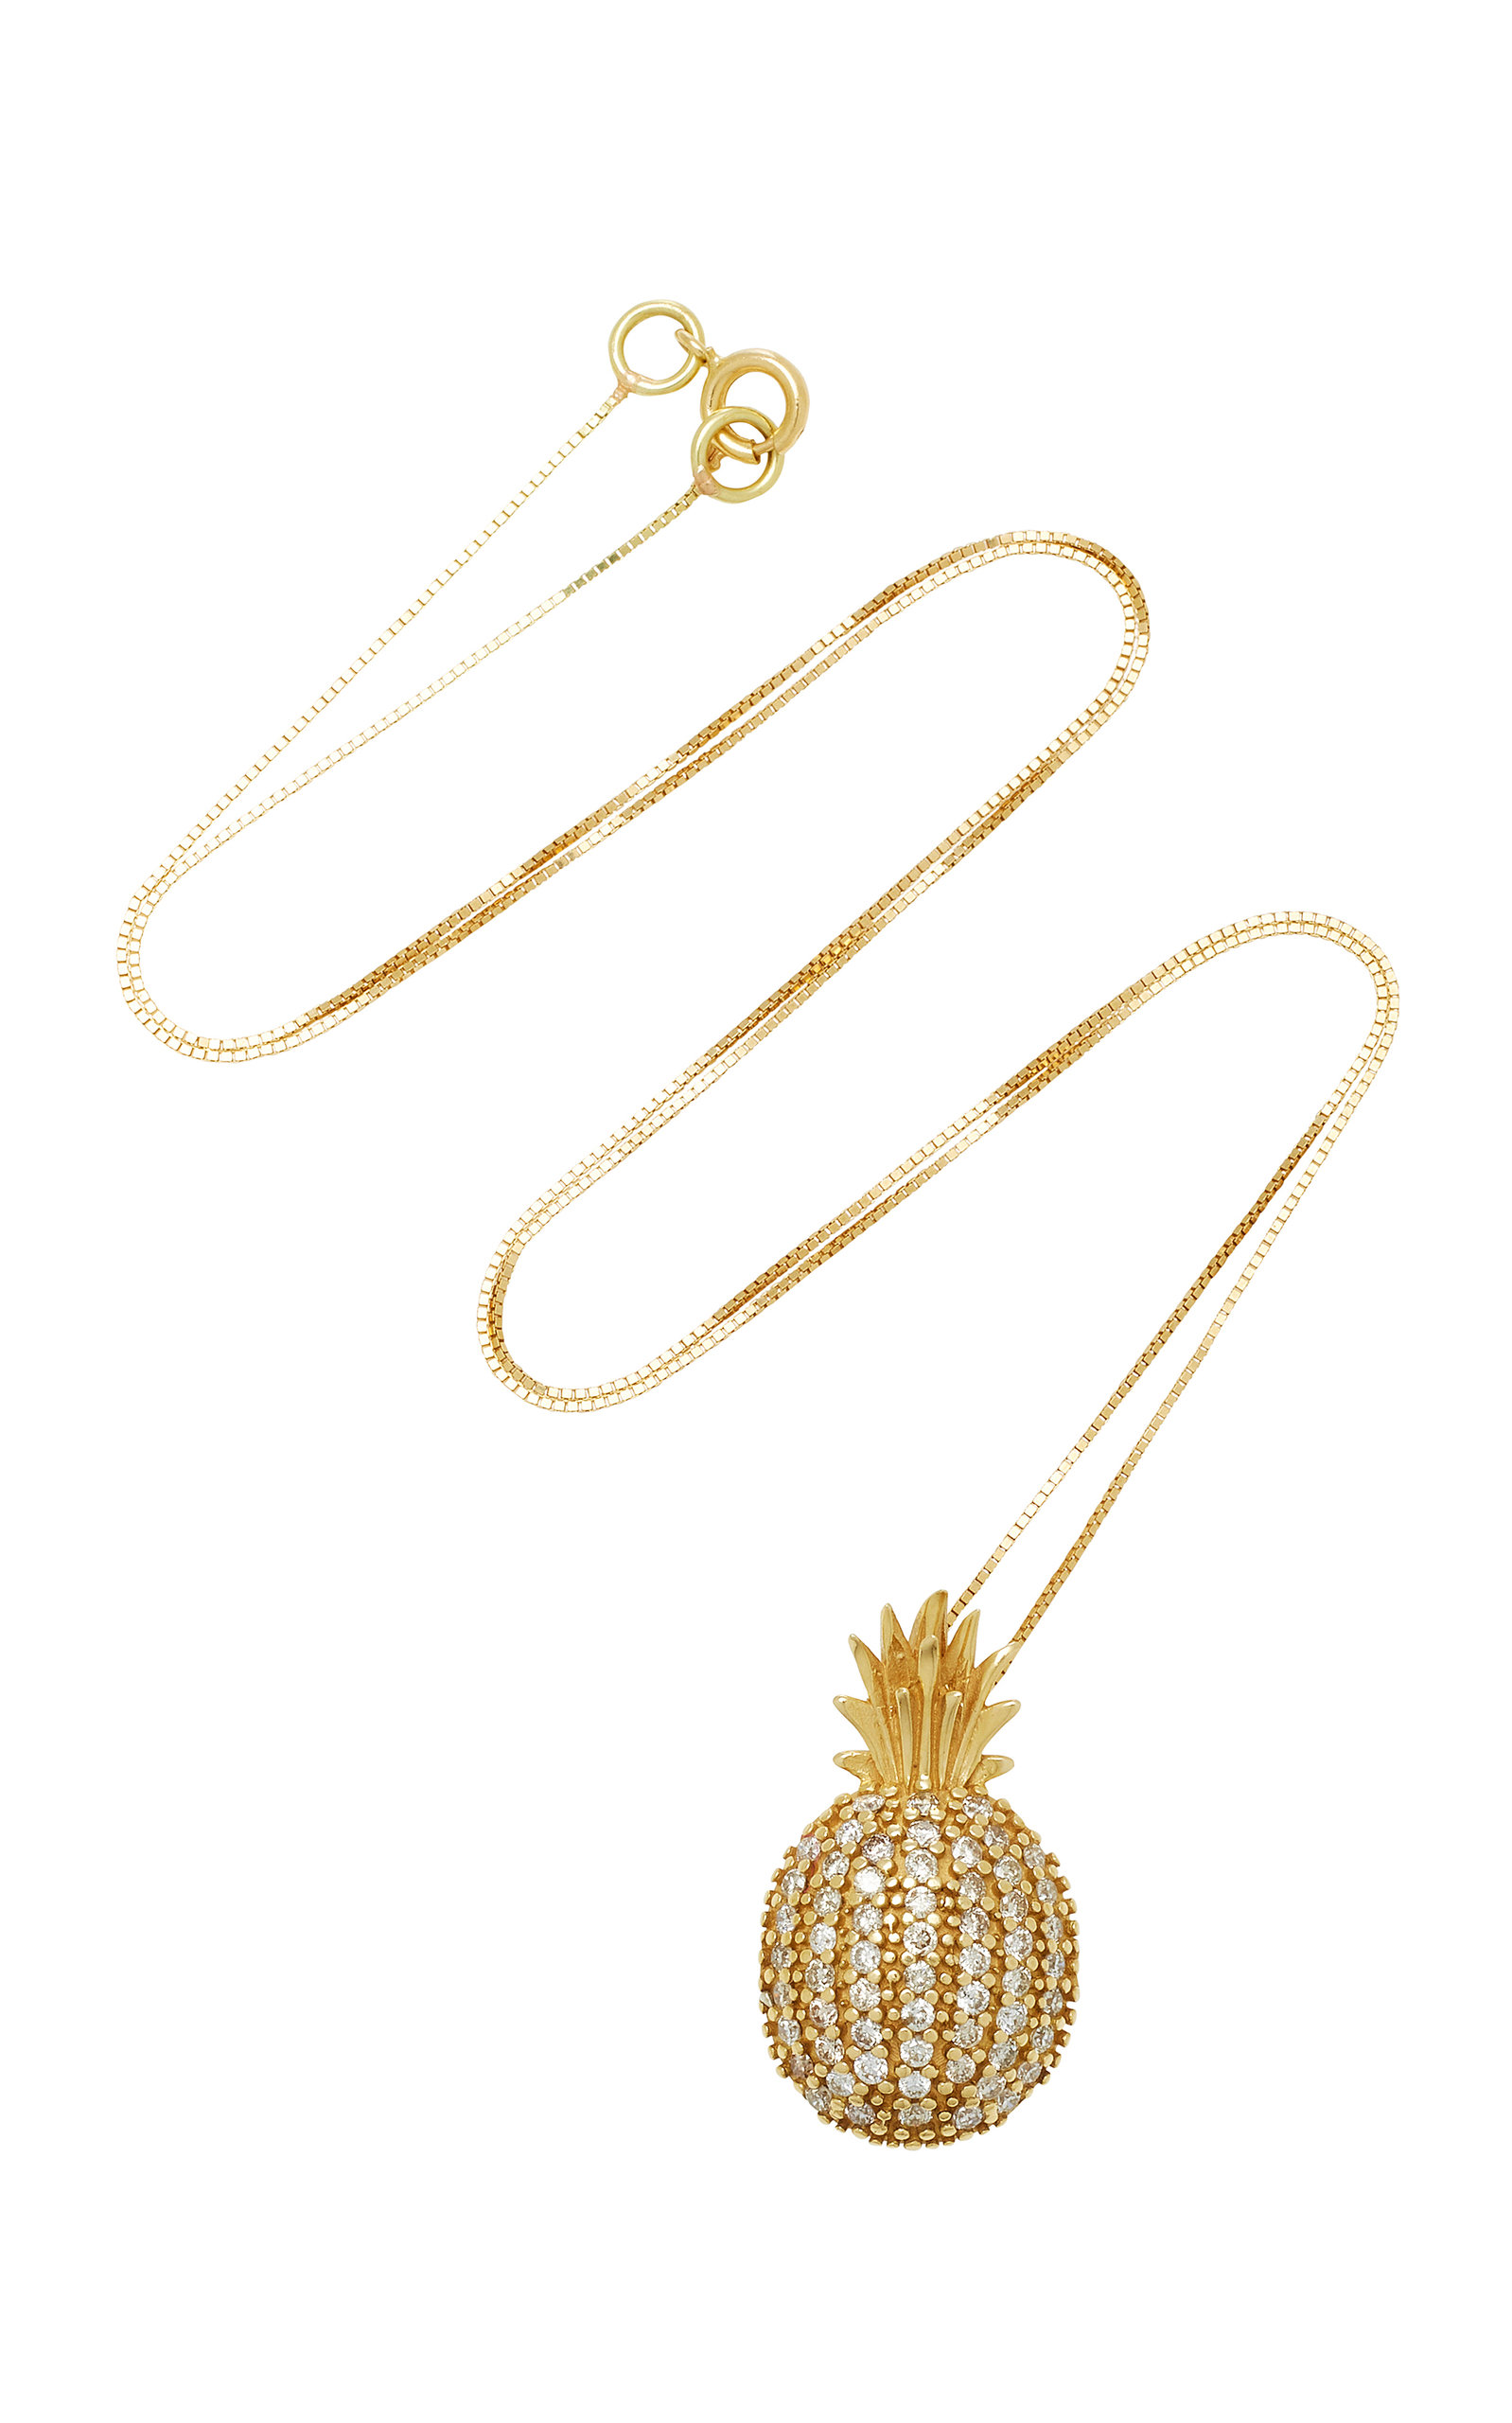 sapphire gallery gold jewelry necklace lyst product in sydney pineapple evan diamond white pendant